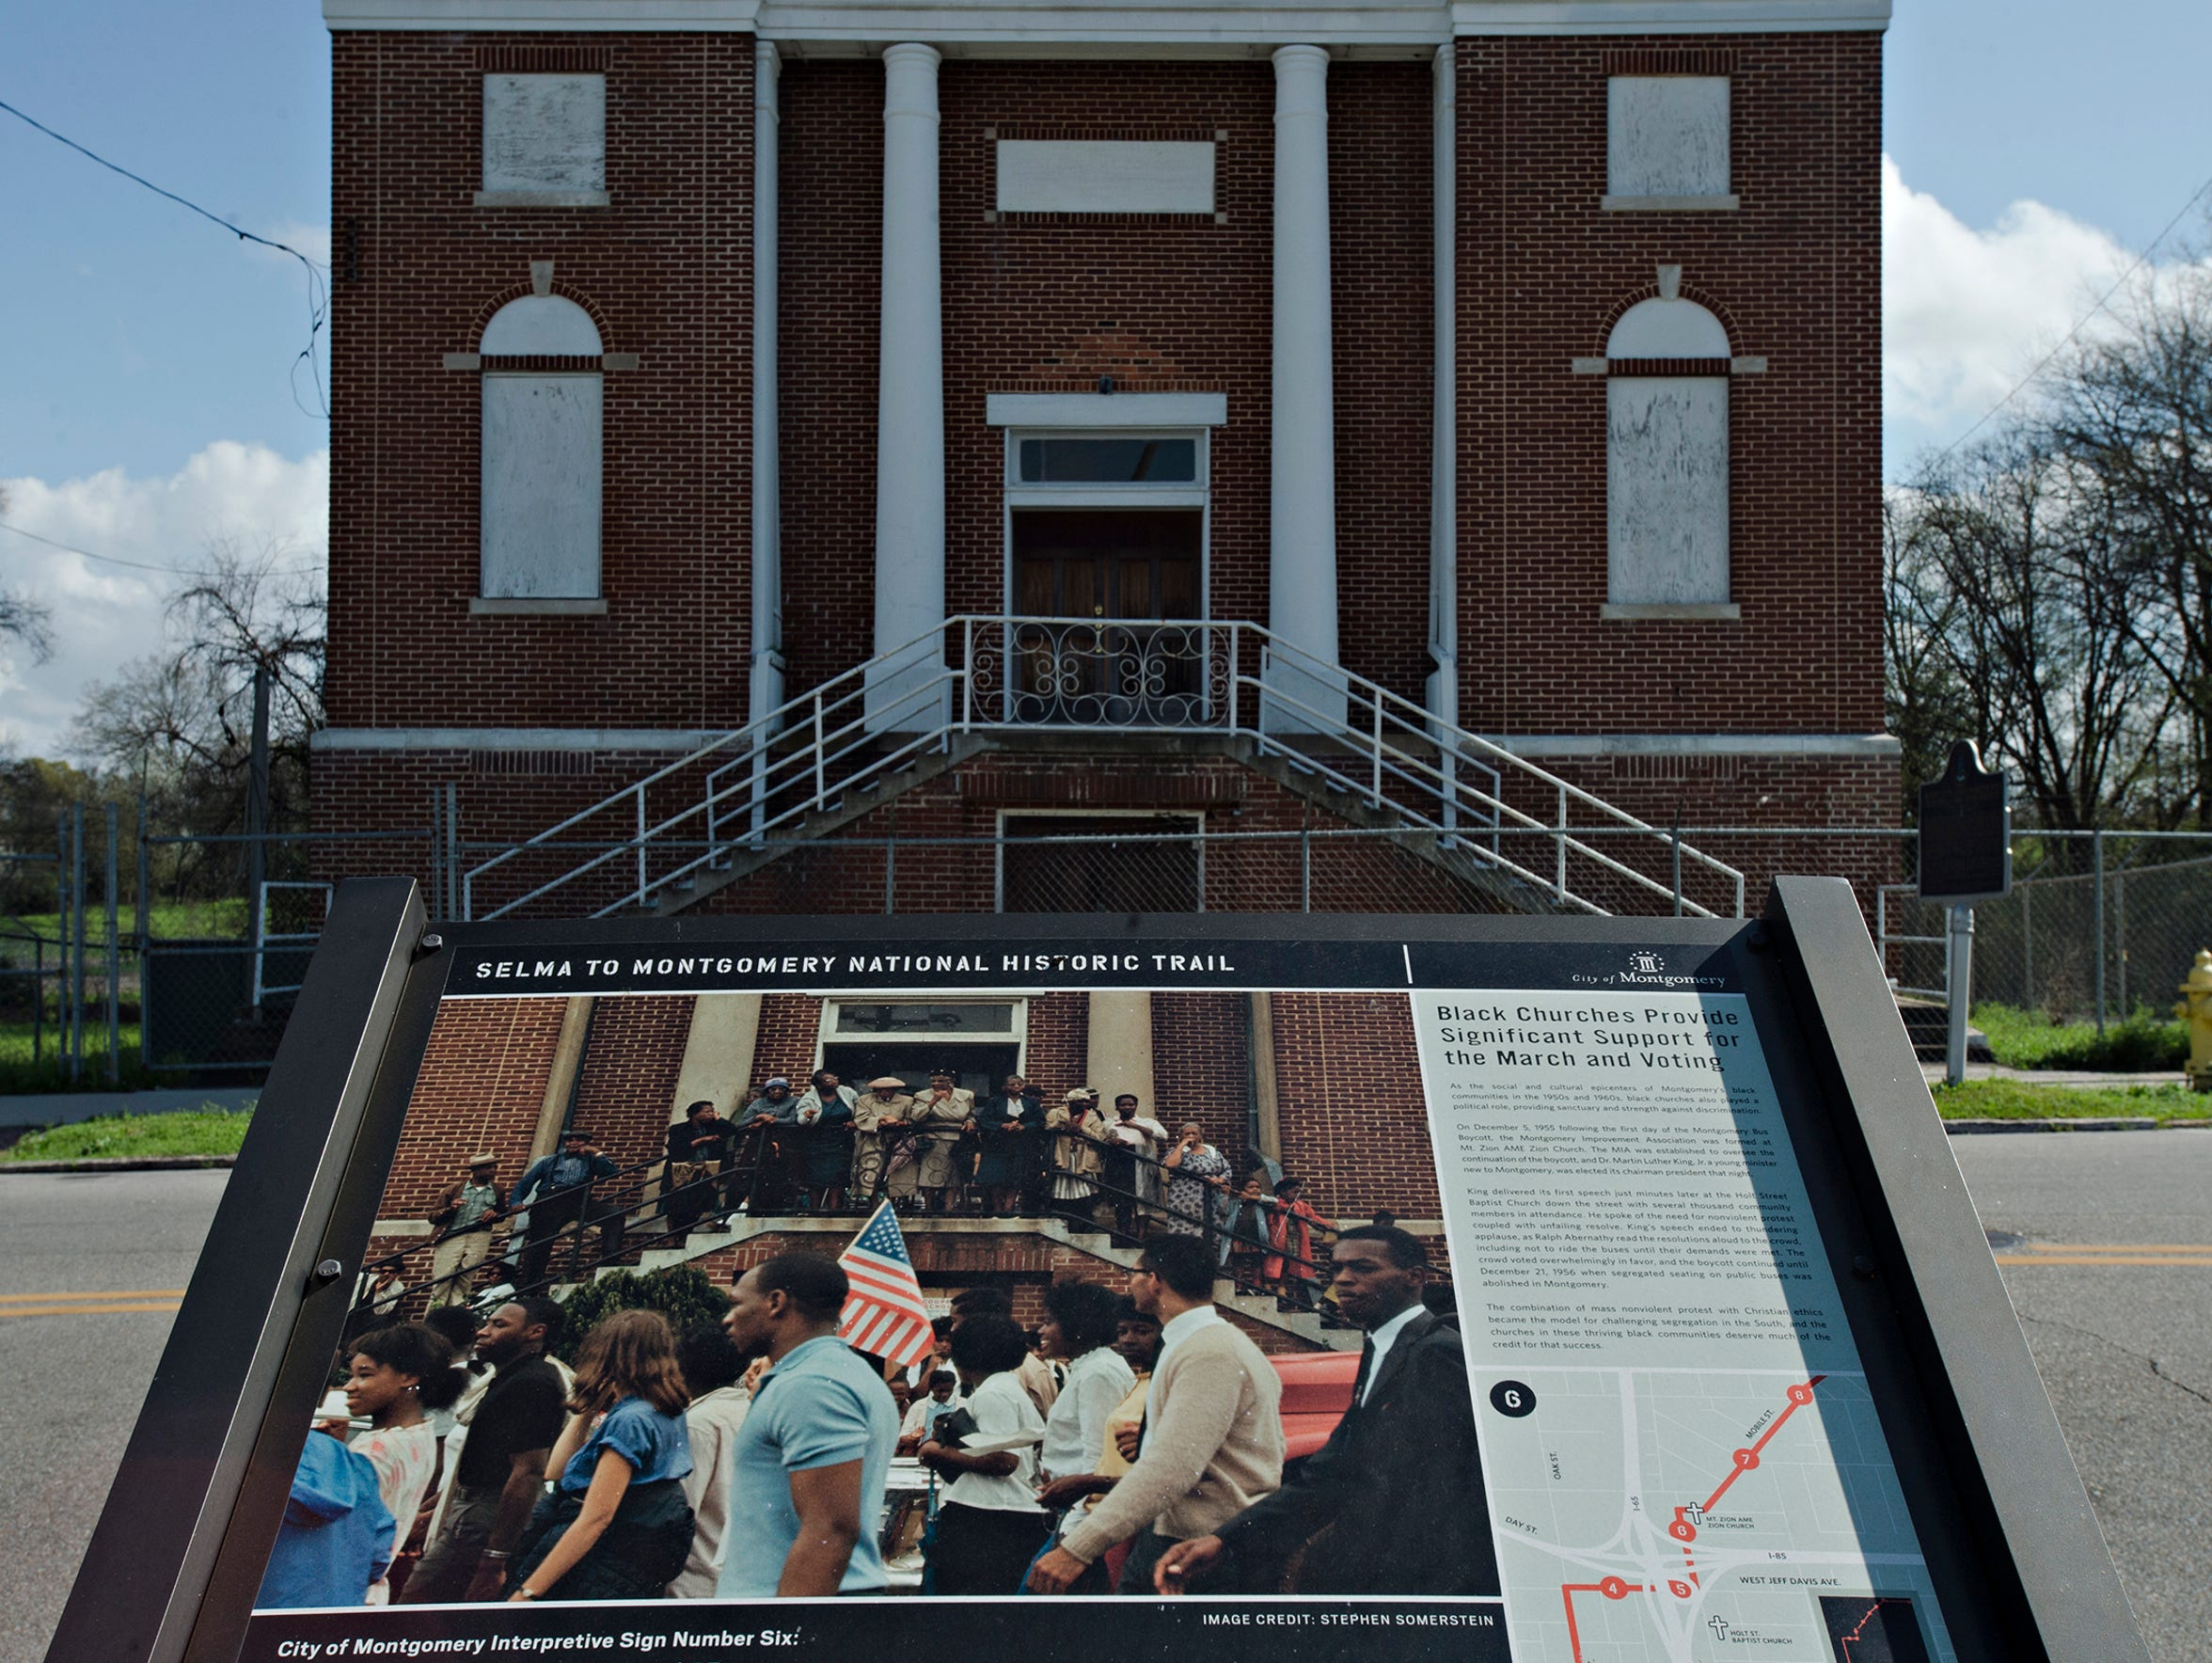 The old building of Mount Zion African Methodist Church